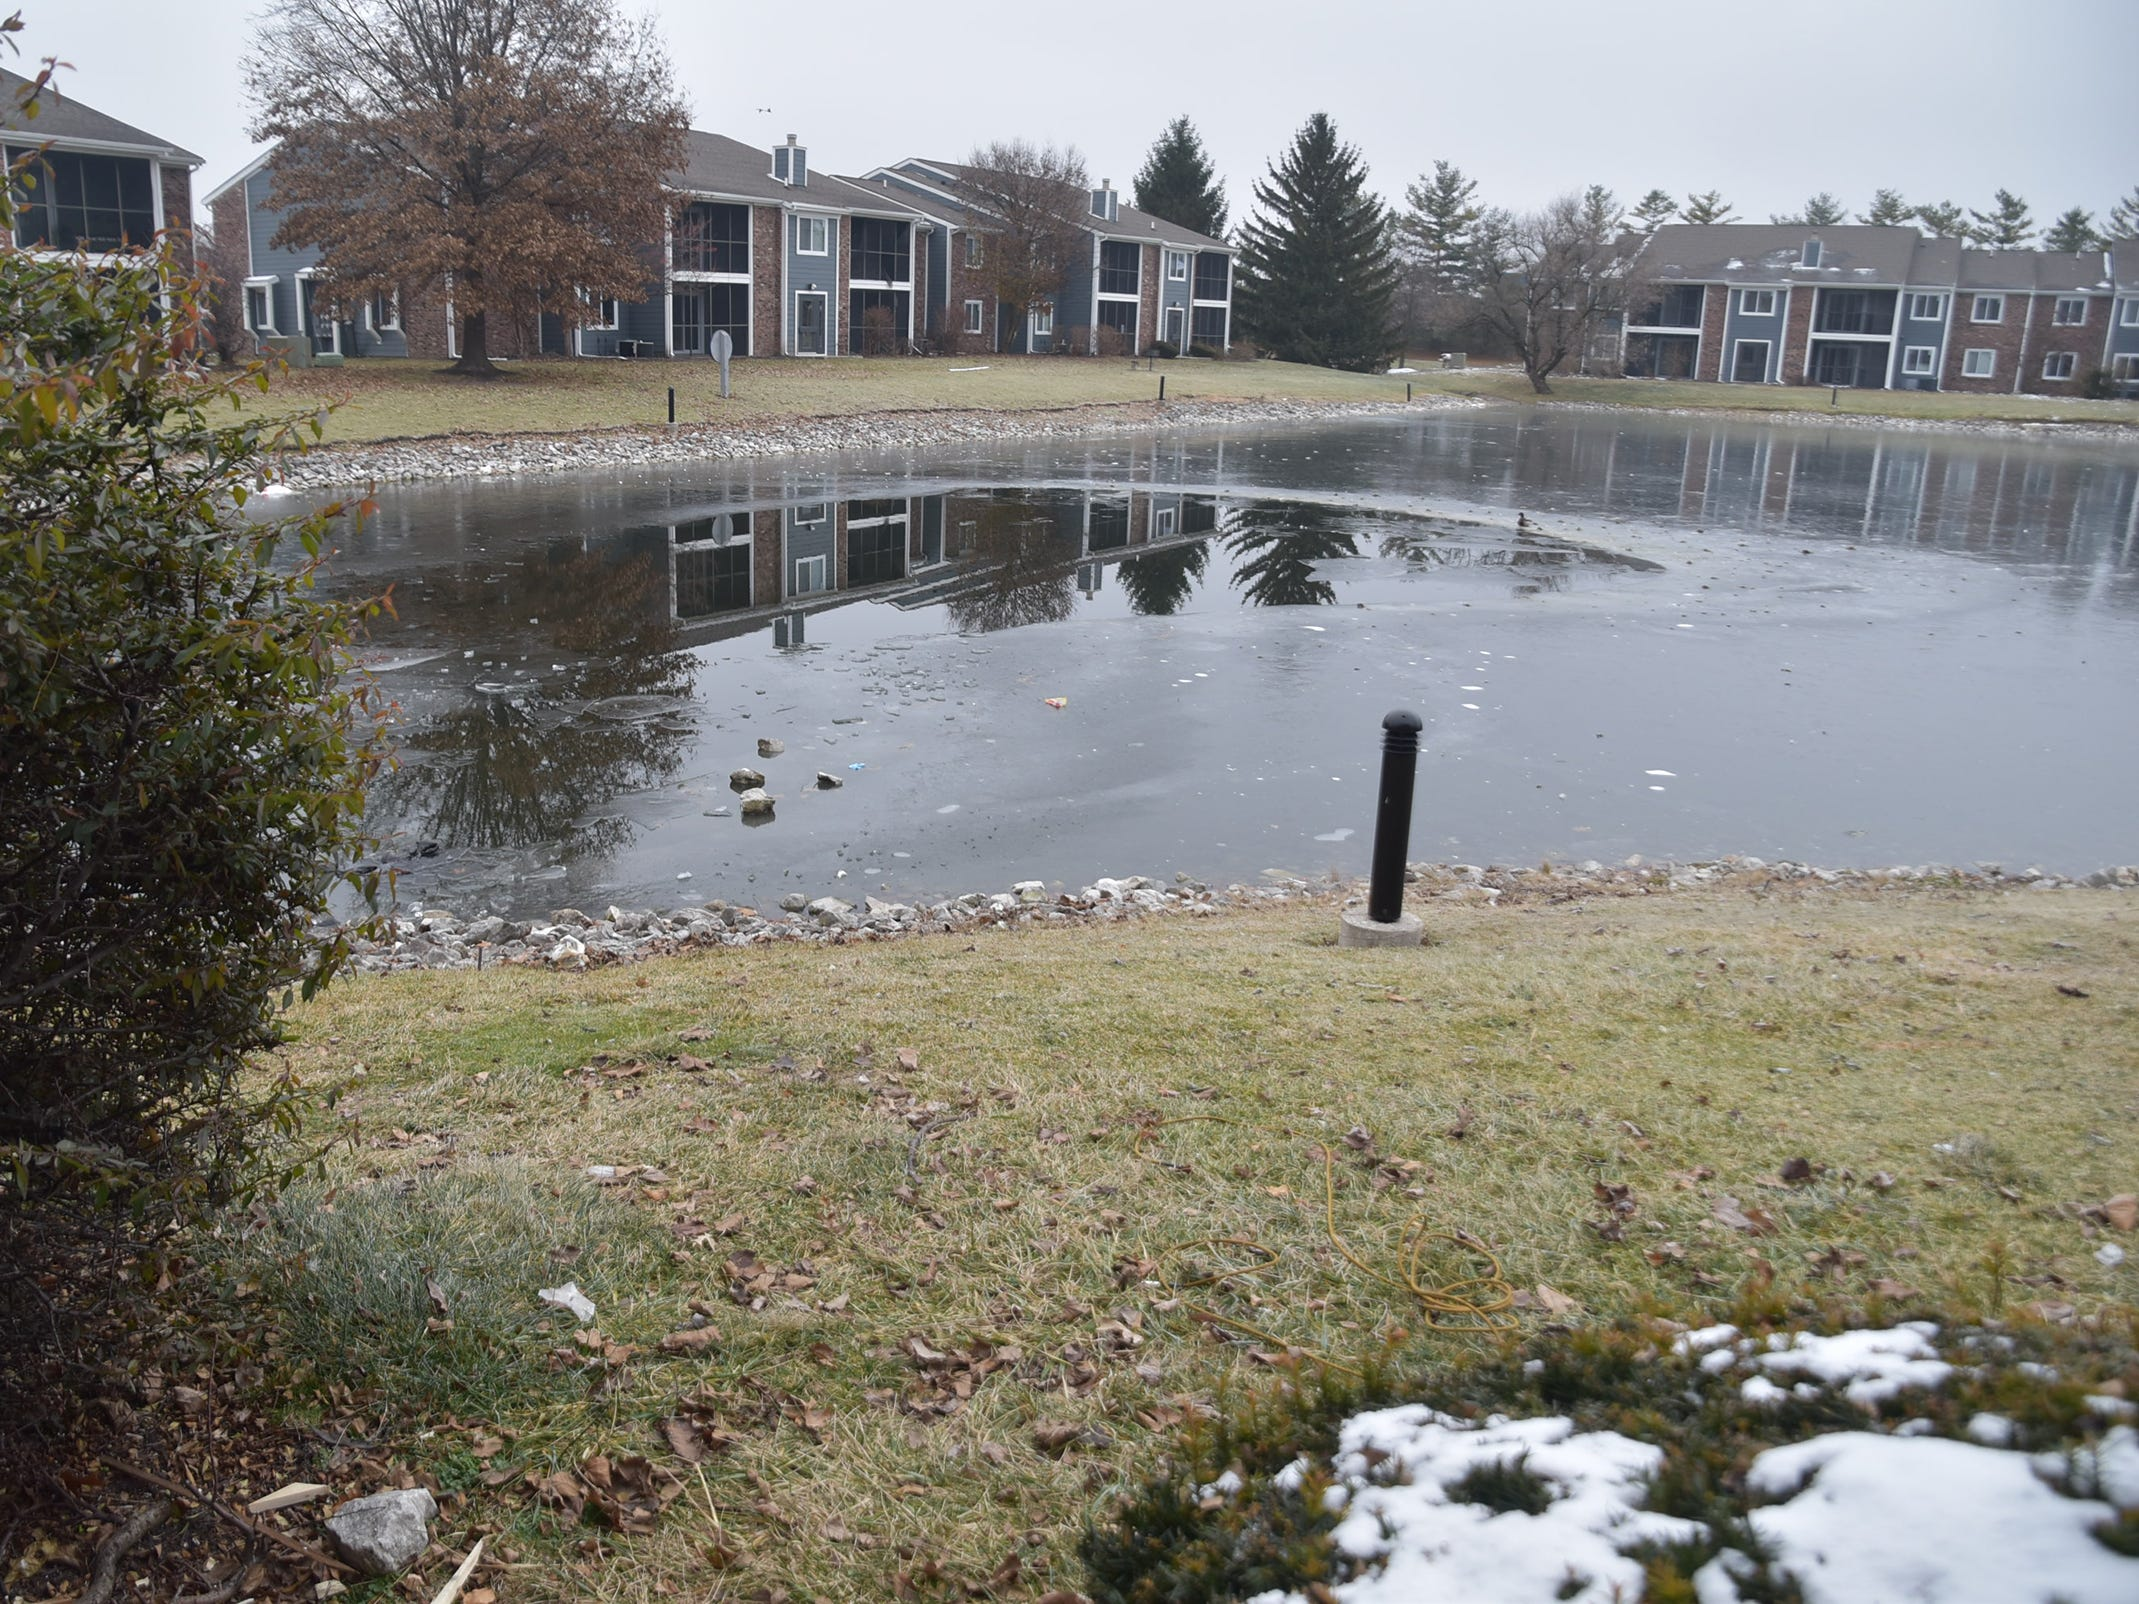 IFD Tactical Dive Team 14 worked to rescue a man, in his 20s, who fell through the ice on this pond at The Masters Apartments at 7039 PGA Drive, as he entered to rescue his dog who had gone out on the ice.  The man later died and was pronounced dead at St. Vincent Hospital.  The dog got out on his own, at the scene and survived.